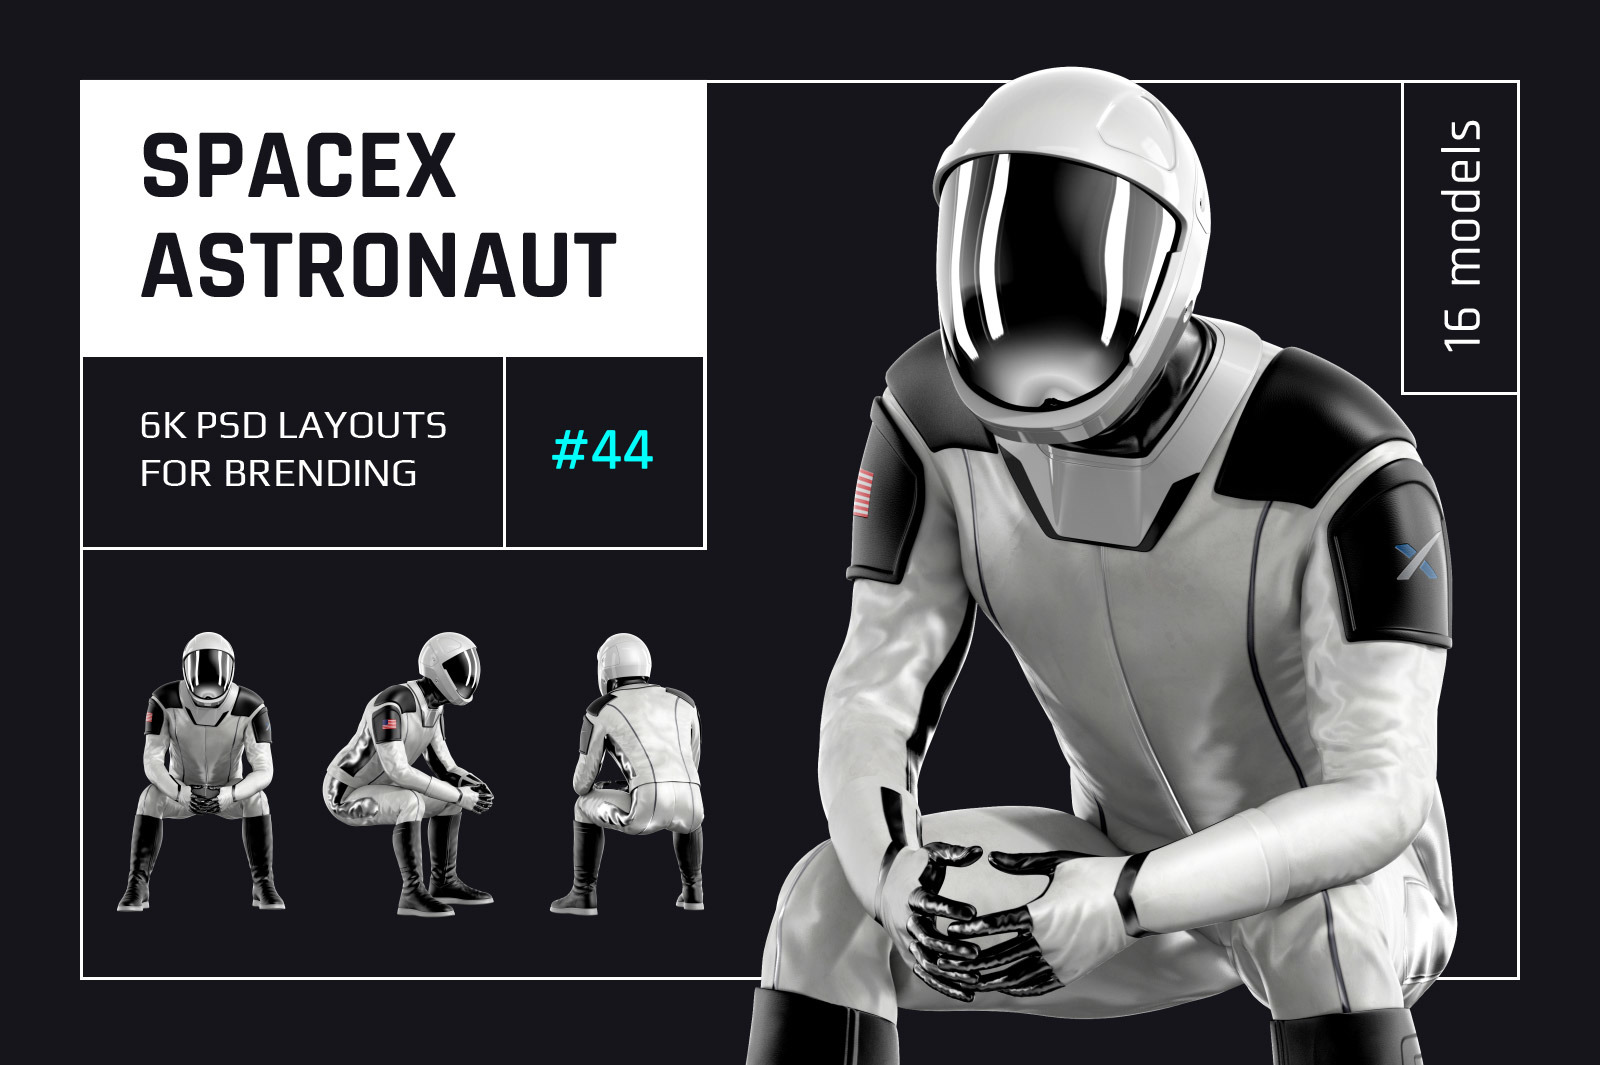 PSD Mockup 3D model SpaceX Astronaut #44